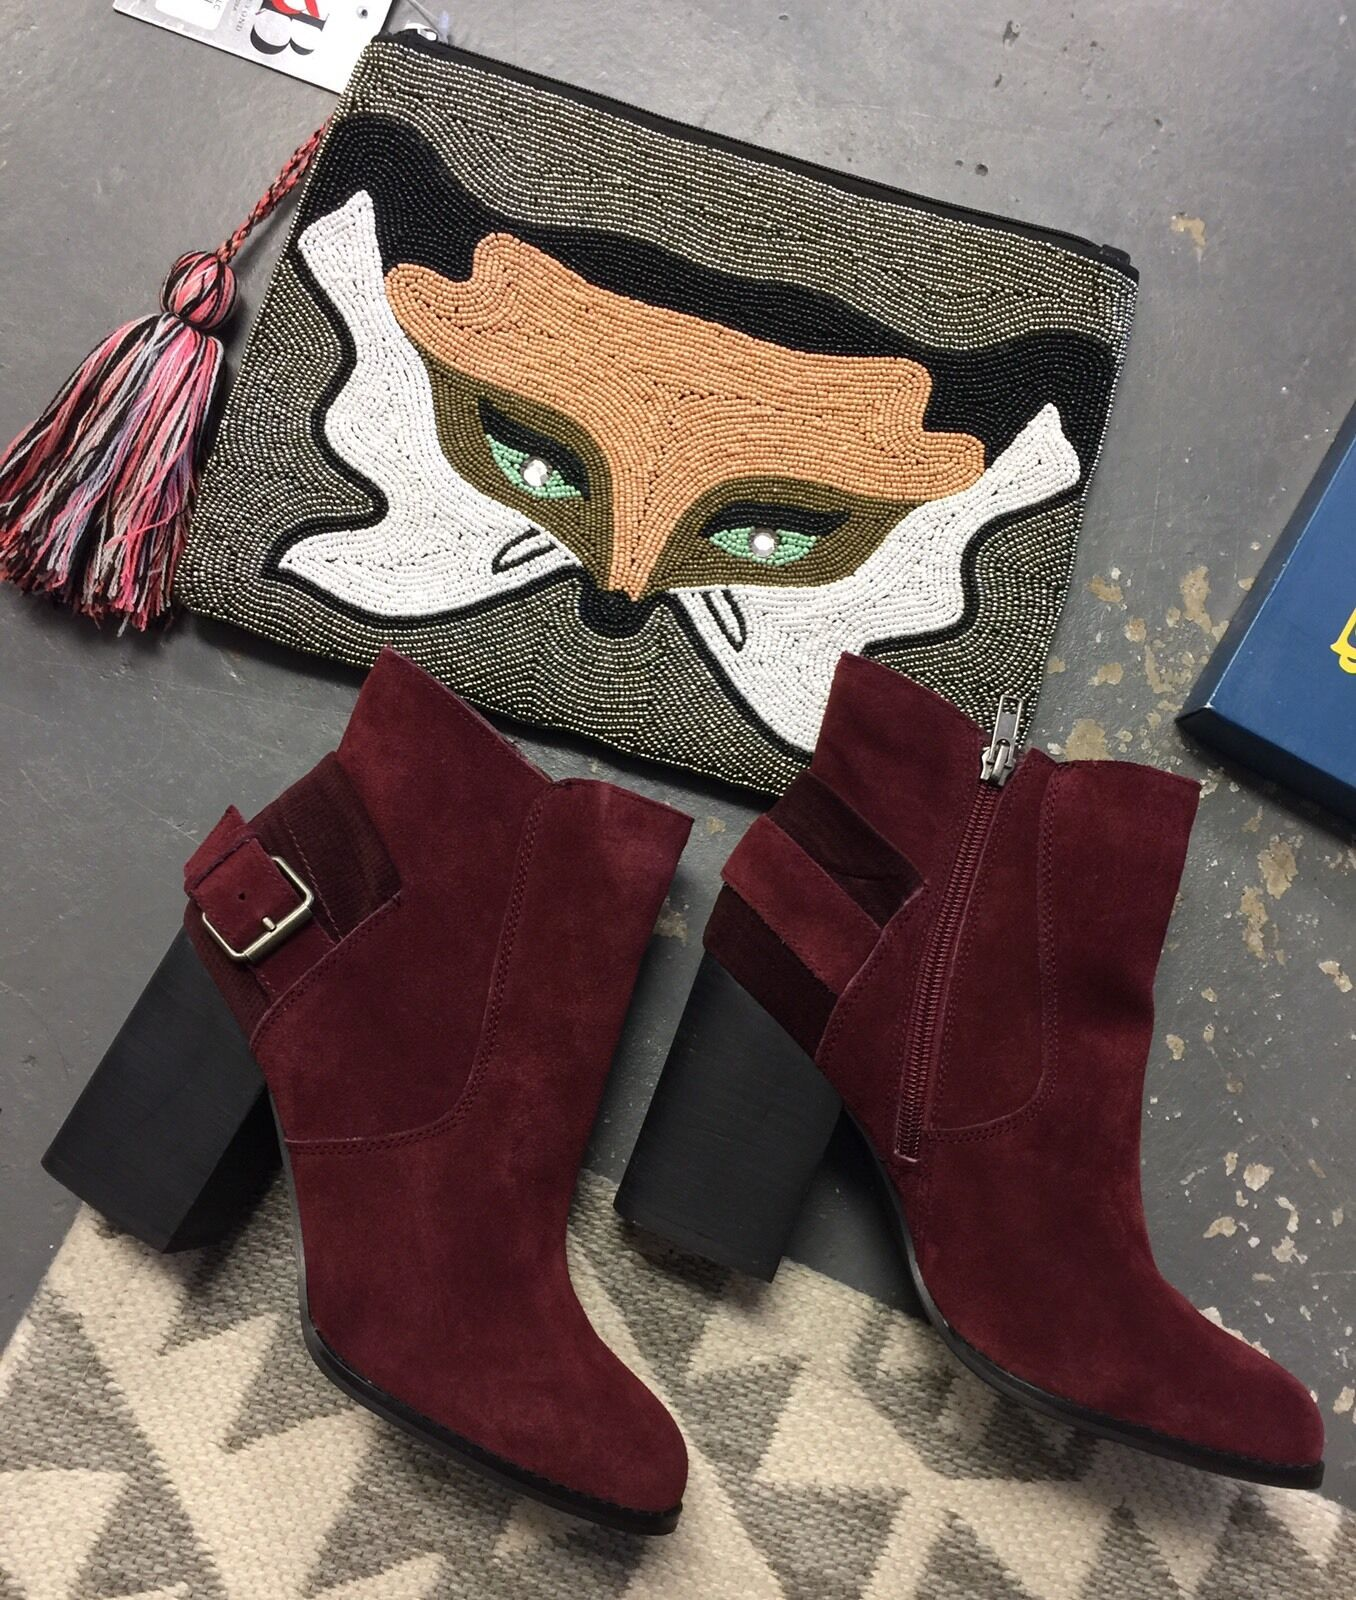 Women's Suede Leather Sbicca Boots Lorenza Wine Color Size 7.5 Brand NEW BOOTIES